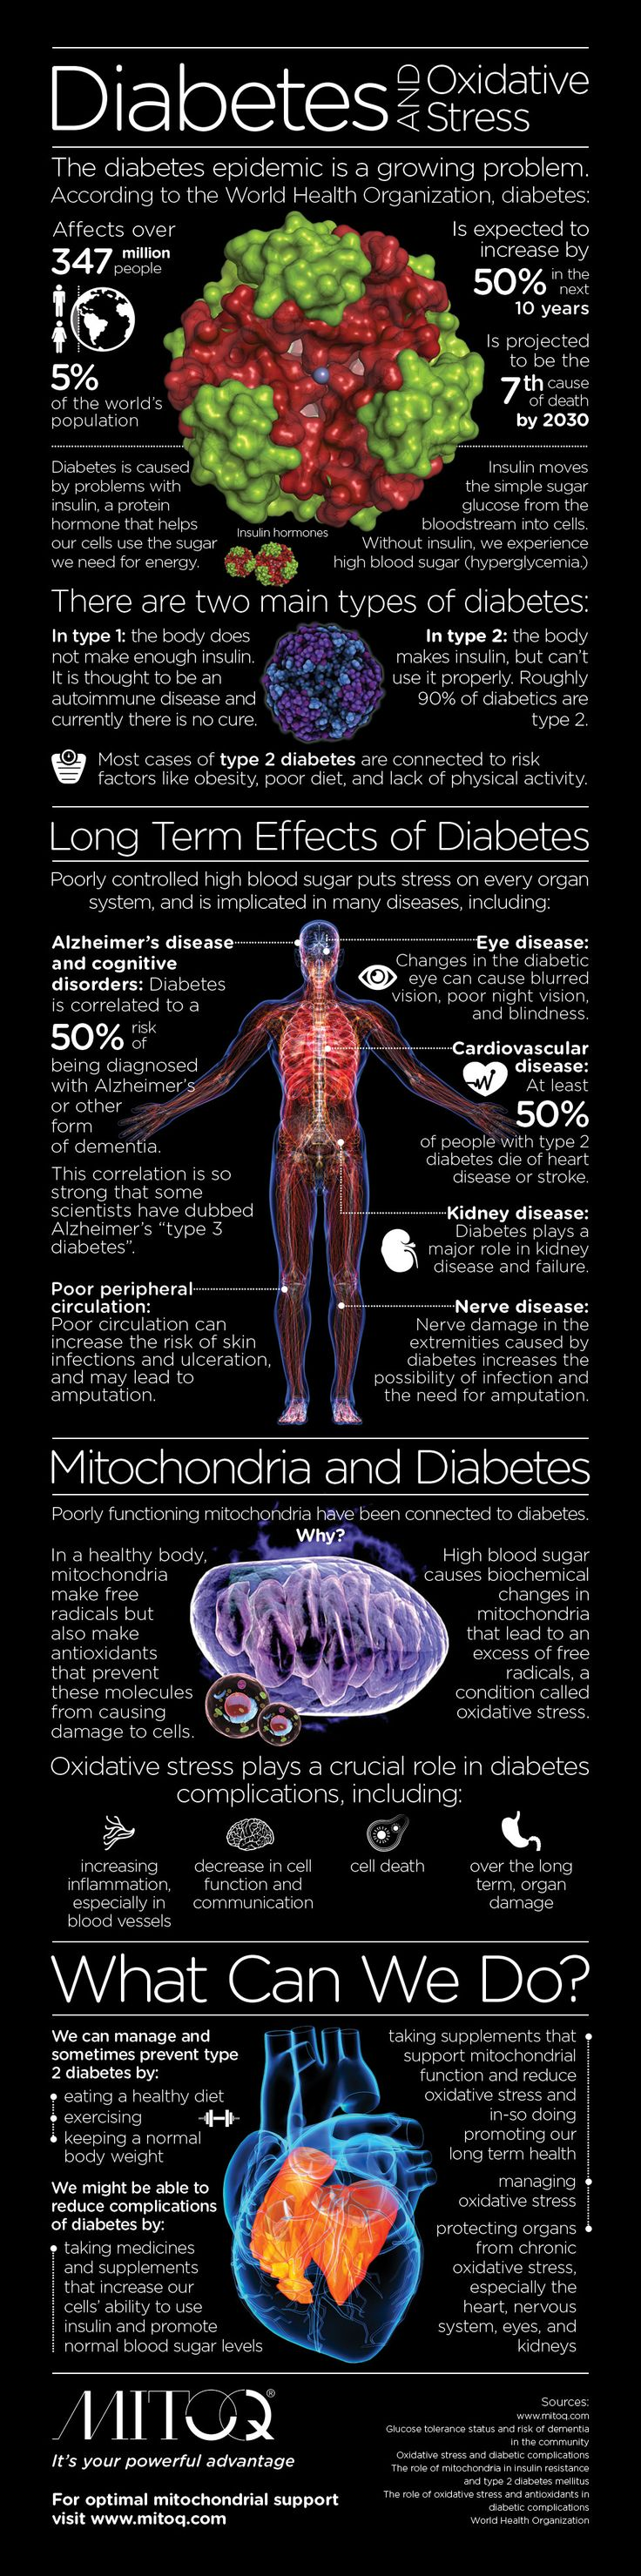 Diabetes & Oxidative Stress - Reduce your oxidative stress by 40% in 30 days with Protandim nrf2 and upregulate yout mitocondria with Protandim nrf1